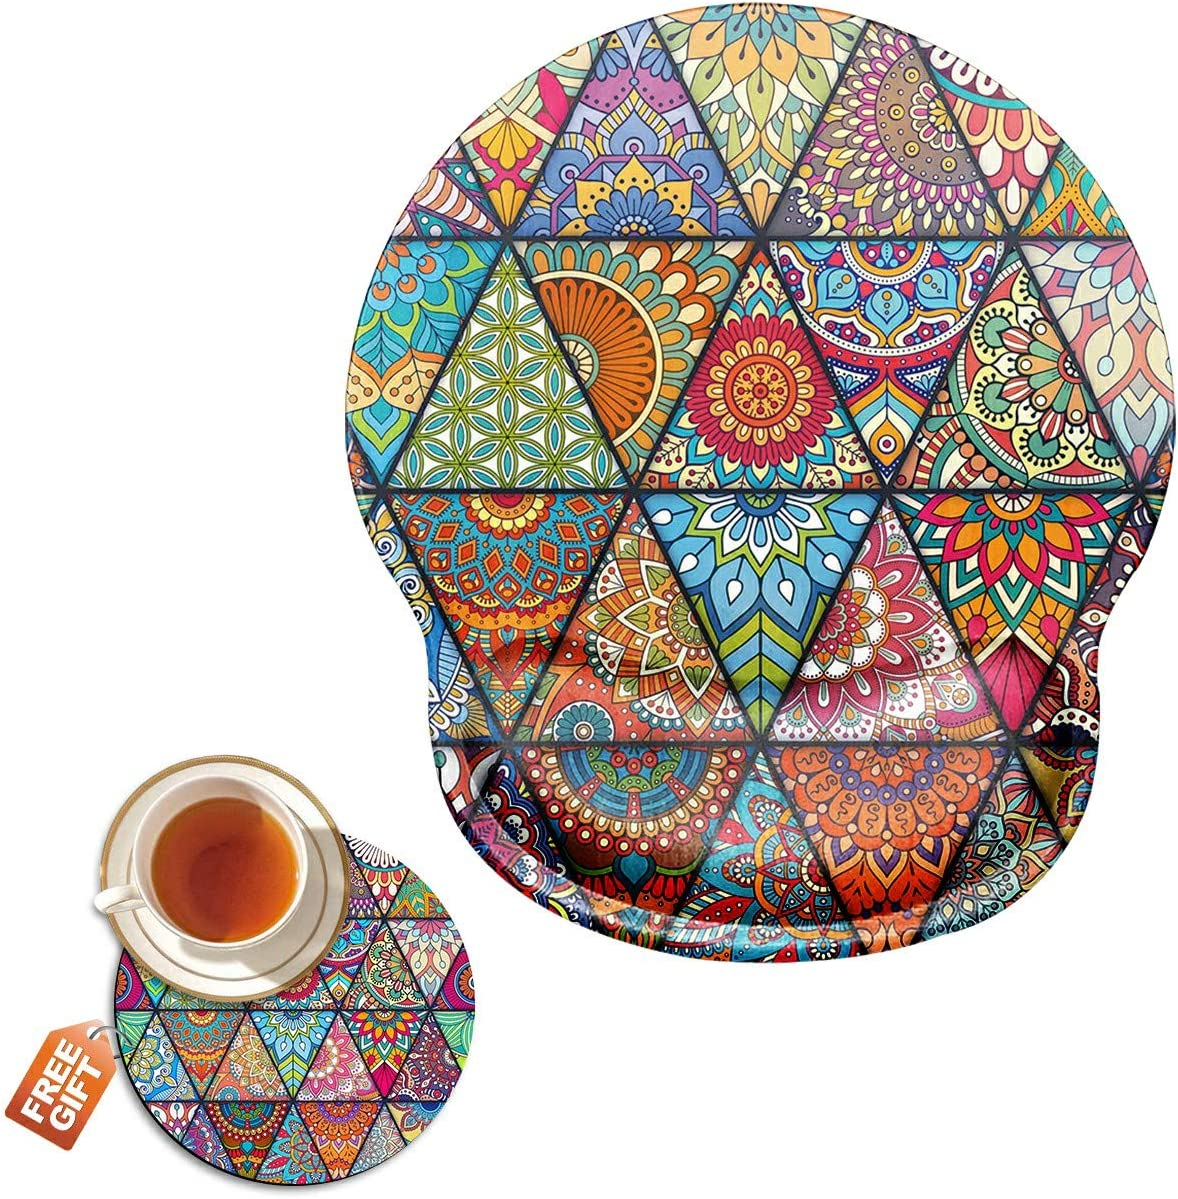 Mouse Pad with Wrist Support Gel Ergonomic Gaming Mousepad with Wrist Rest for Laptop Colorful Diamond Colorful Diamond Computer Home Office Working Mouse Mat + A Cute Coffee Pad